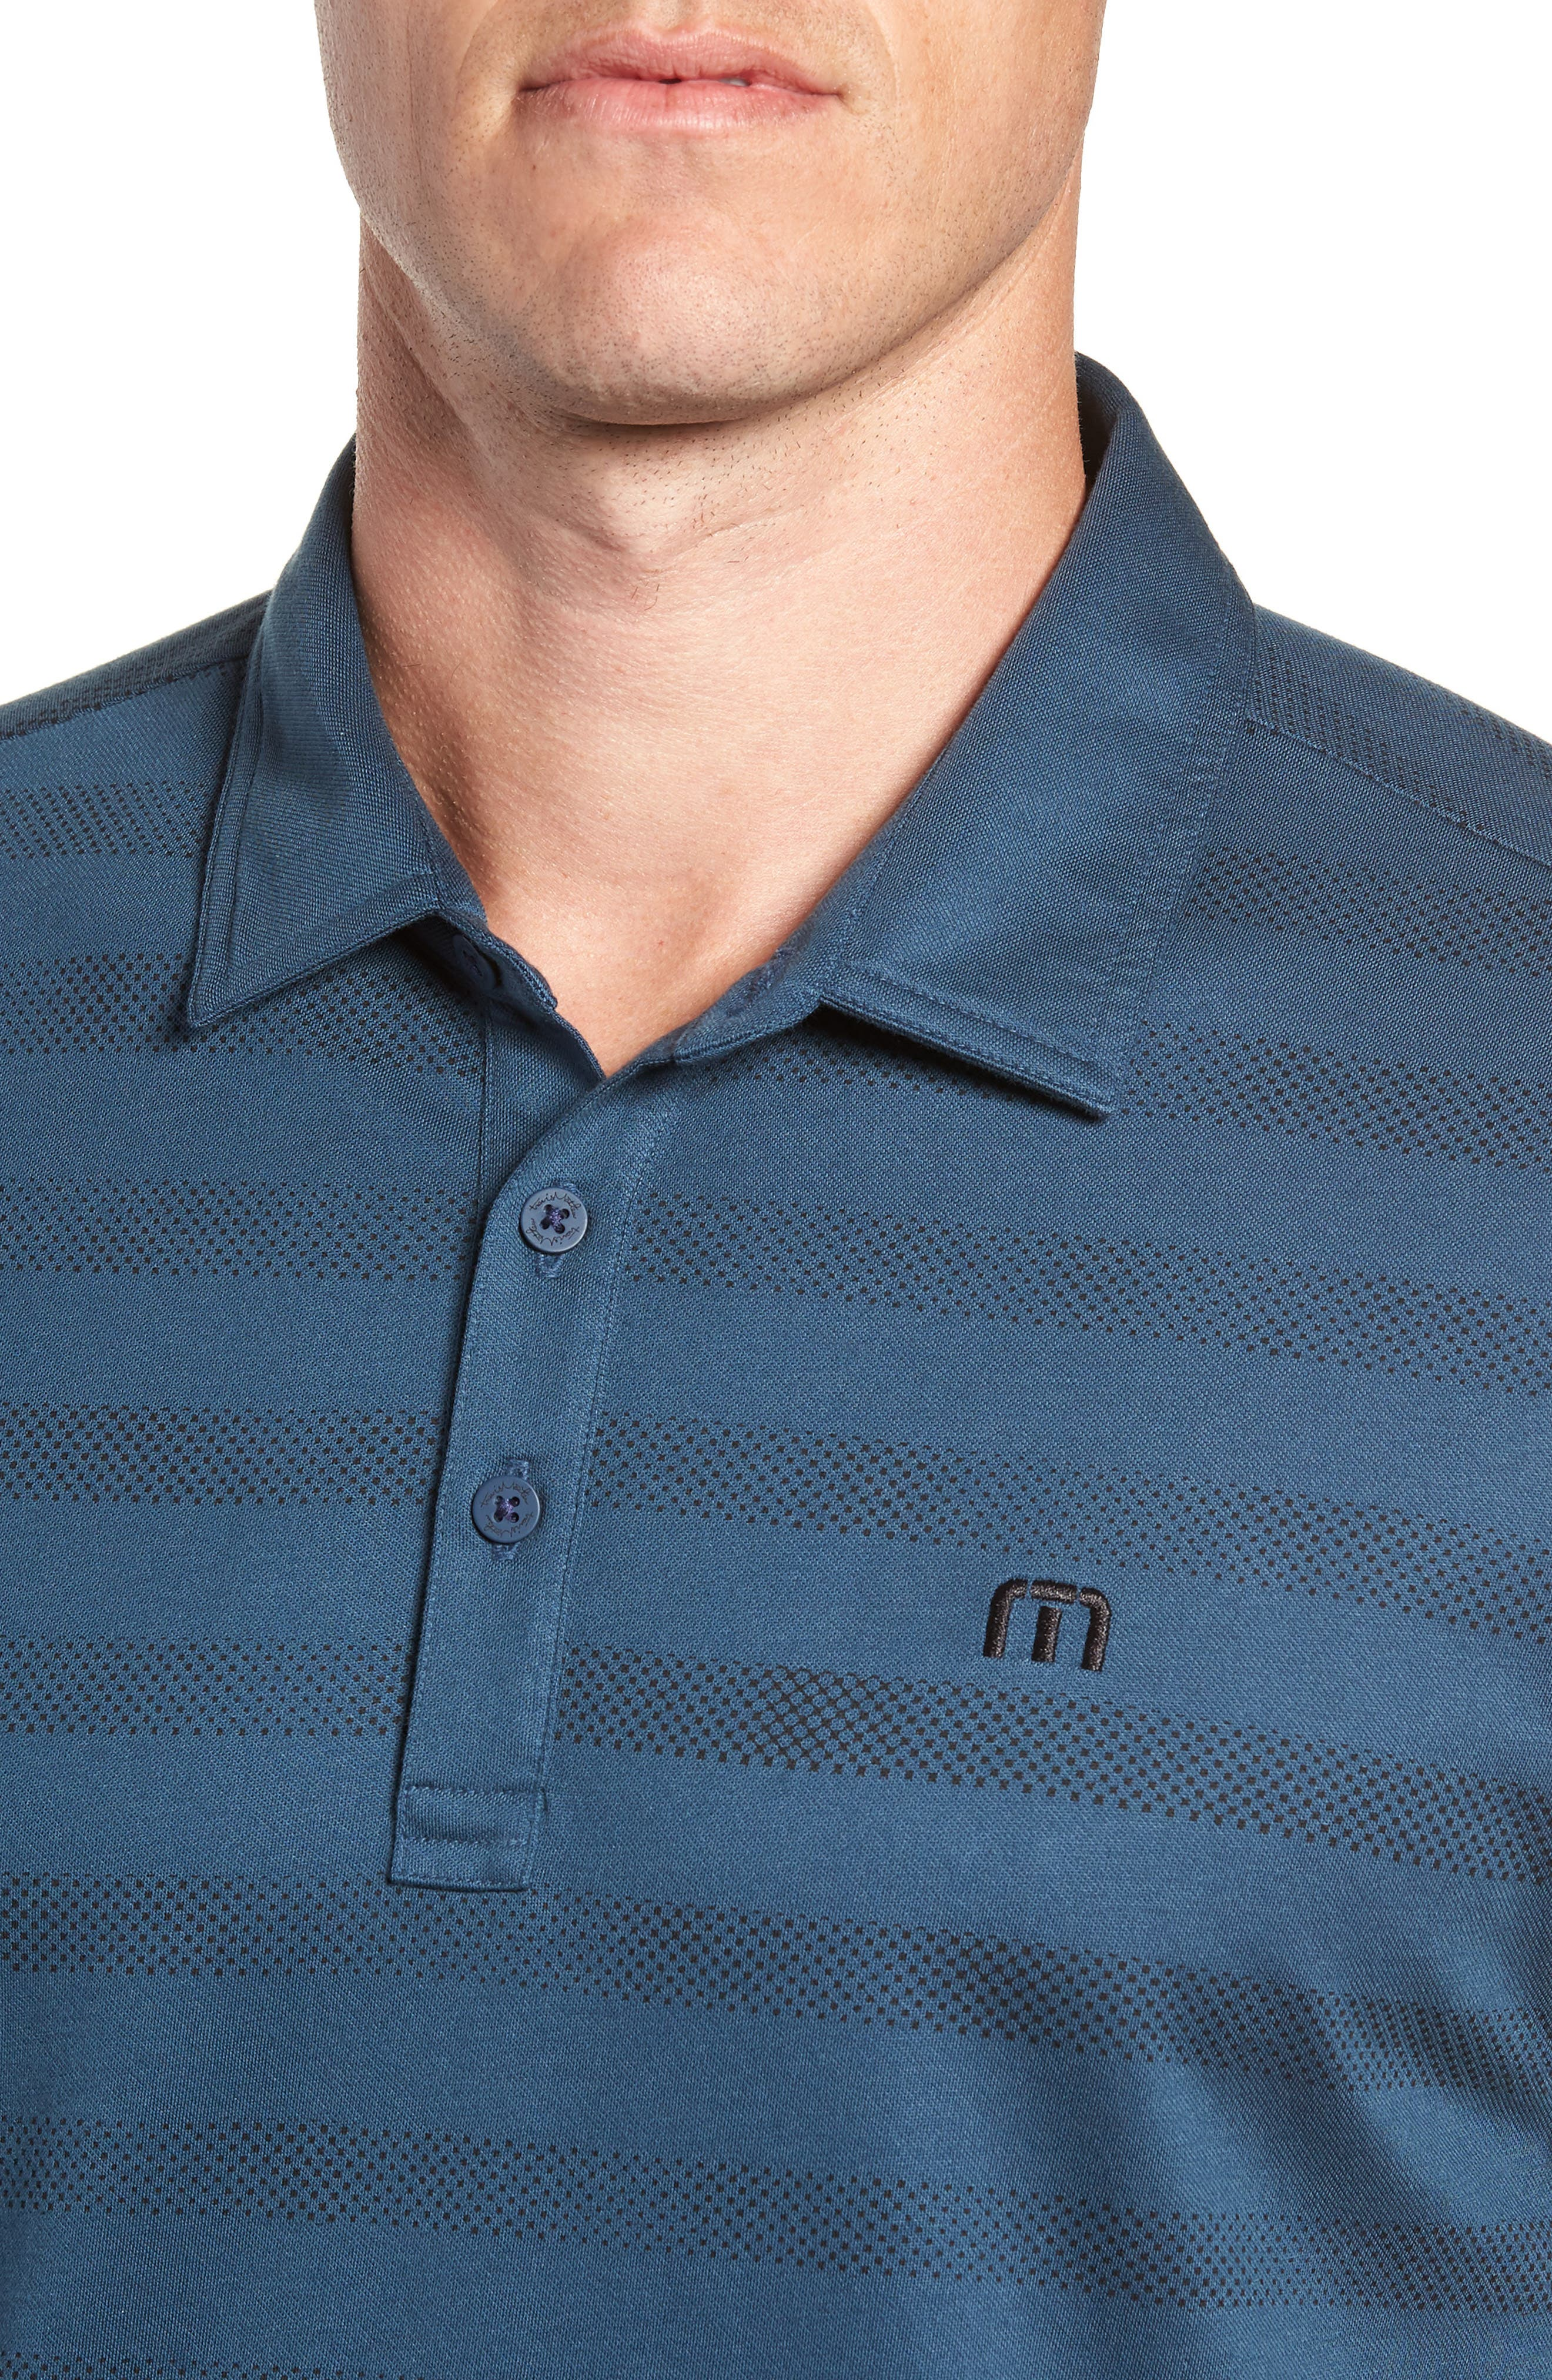 Dolphinantly Regular Fit Polo,                             Alternate thumbnail 4, color,                             BLUE WING TEAL